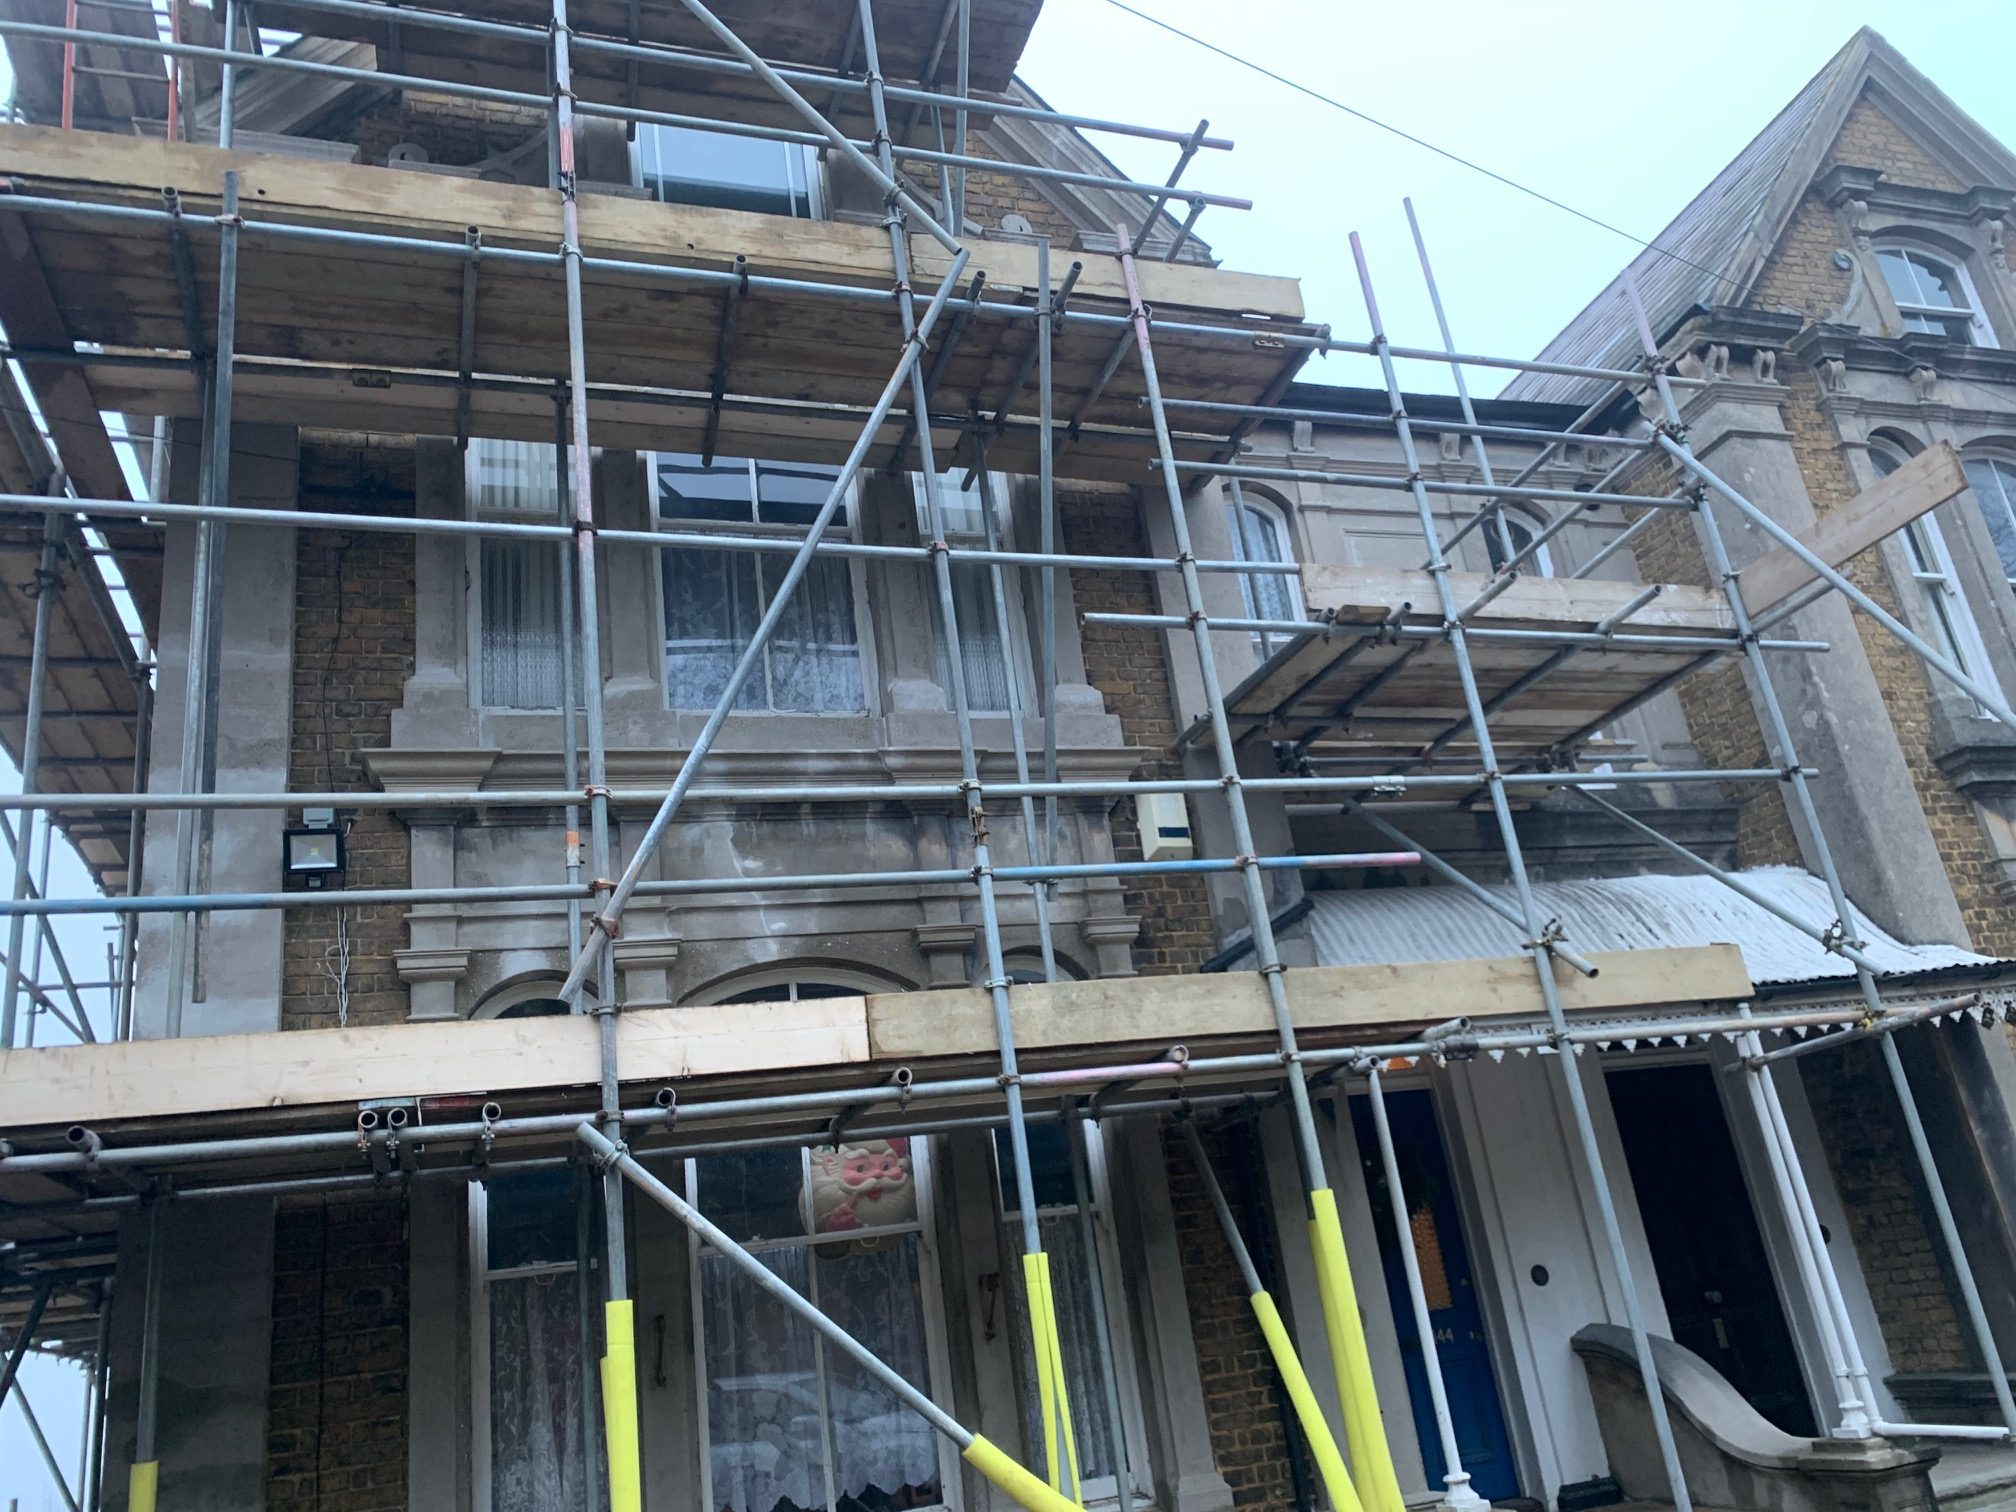 Malling Masonry Doff Cleaning service to restore Stonework to all elevations for this Kent residential property